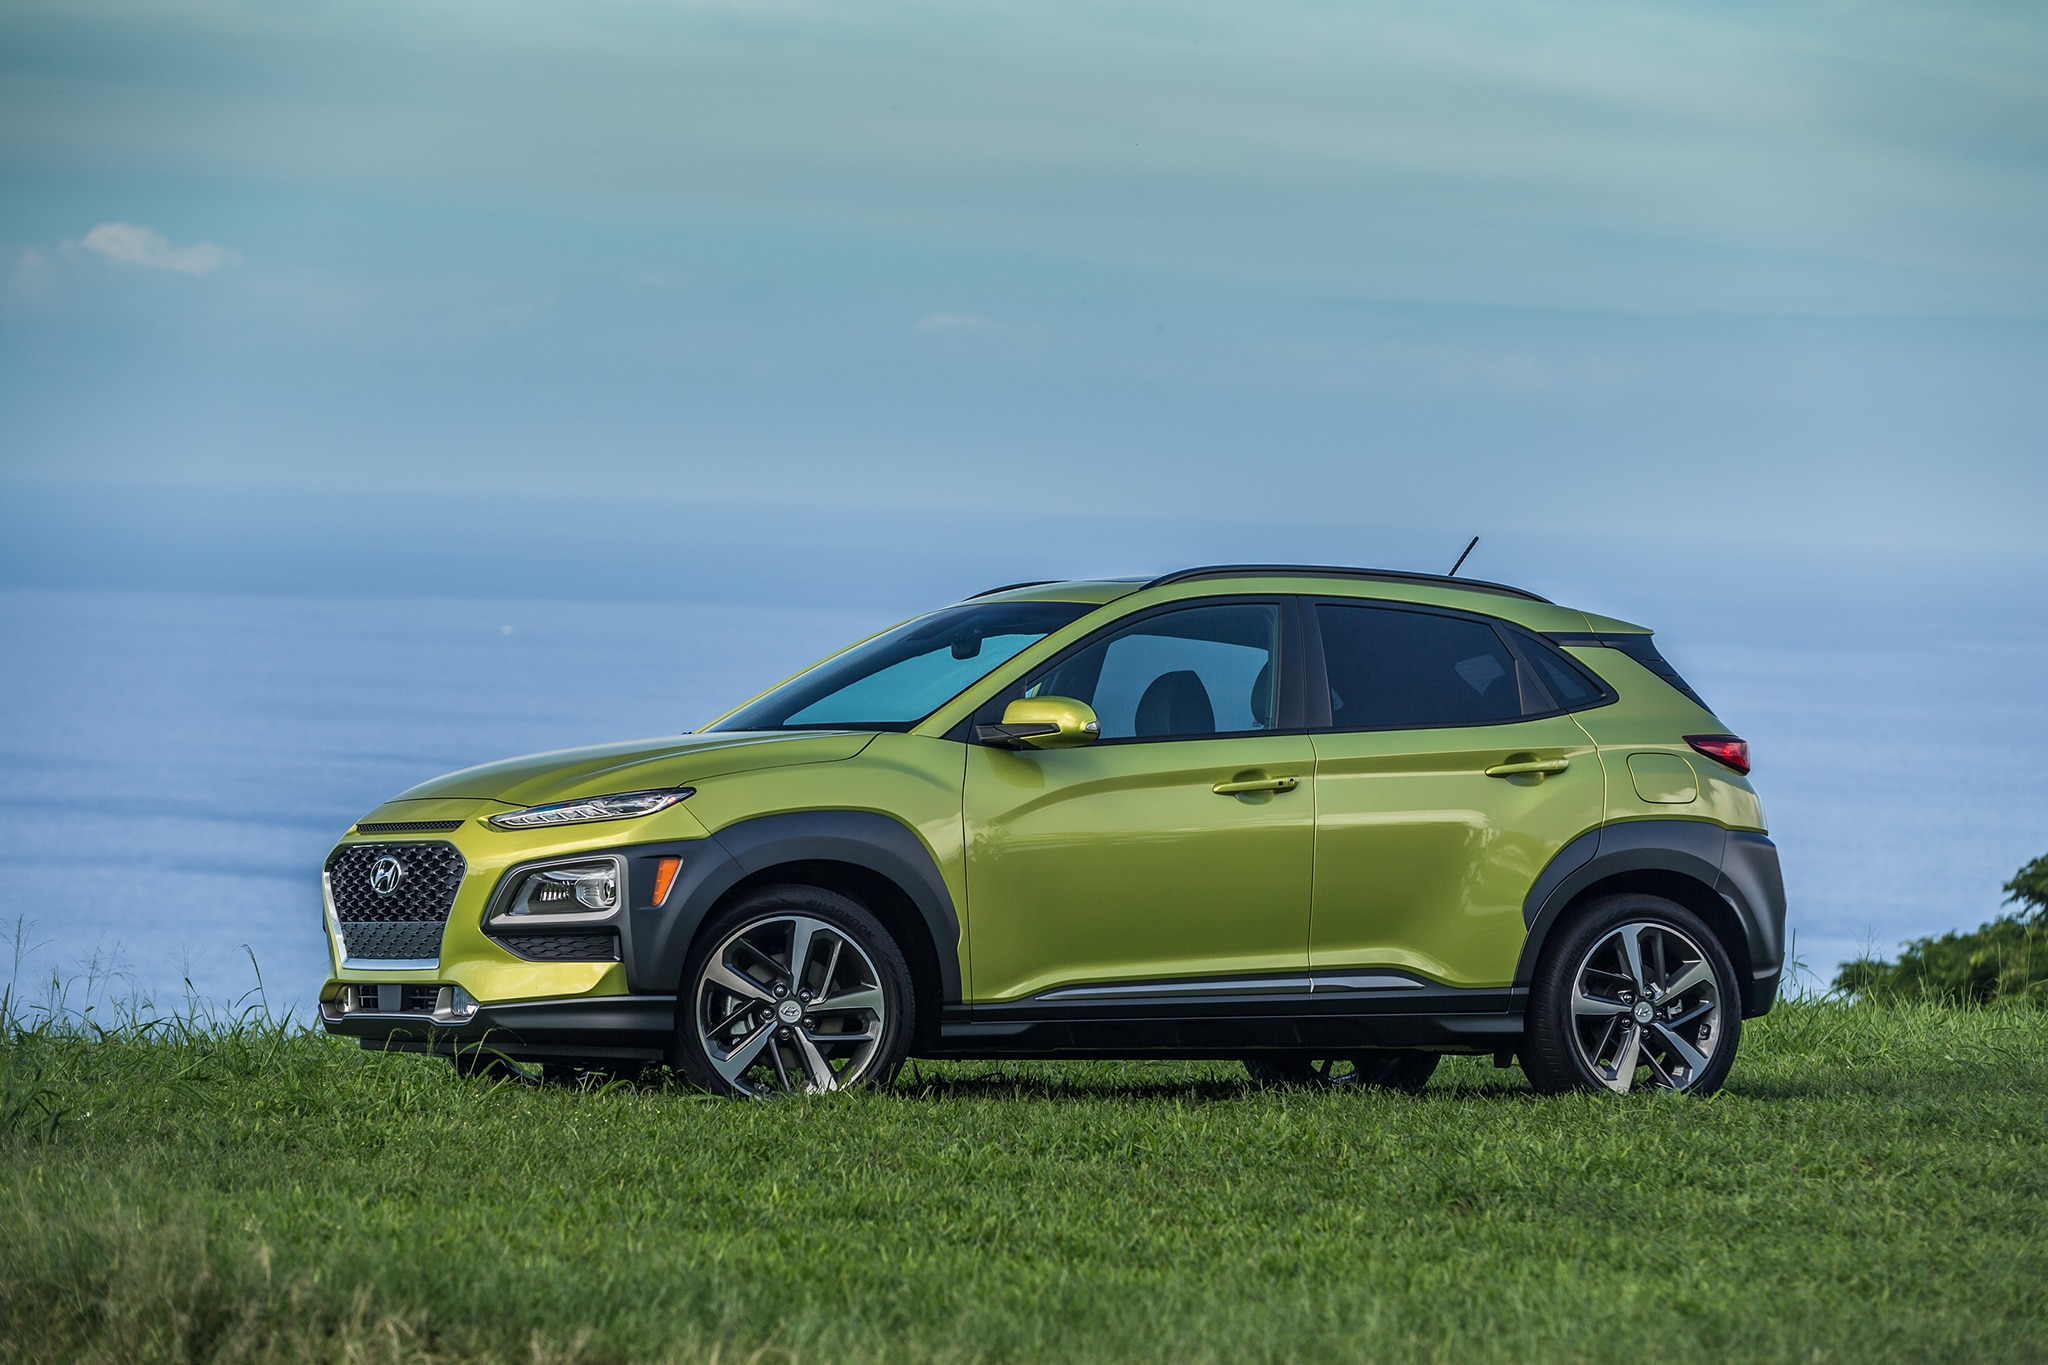 hyundai kona ev beats tesla to the compact electric crossover punch automobile magazine. Black Bedroom Furniture Sets. Home Design Ideas